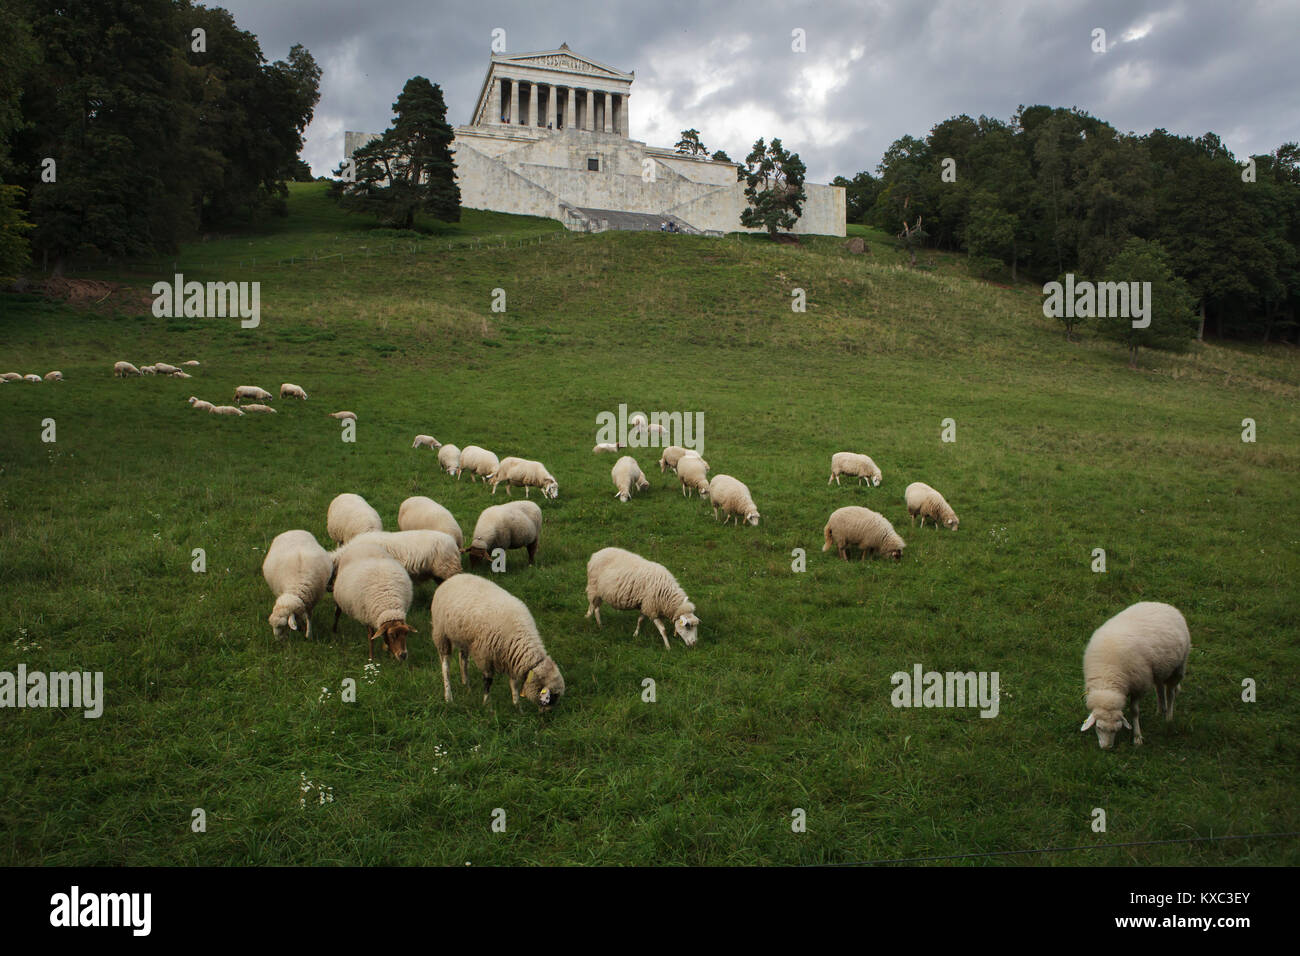 Sheep pasturing on the meadow in front of the Walhalla Memorial near Regensburg in Bavaria, Germany. Photo by Vova Stock Photo